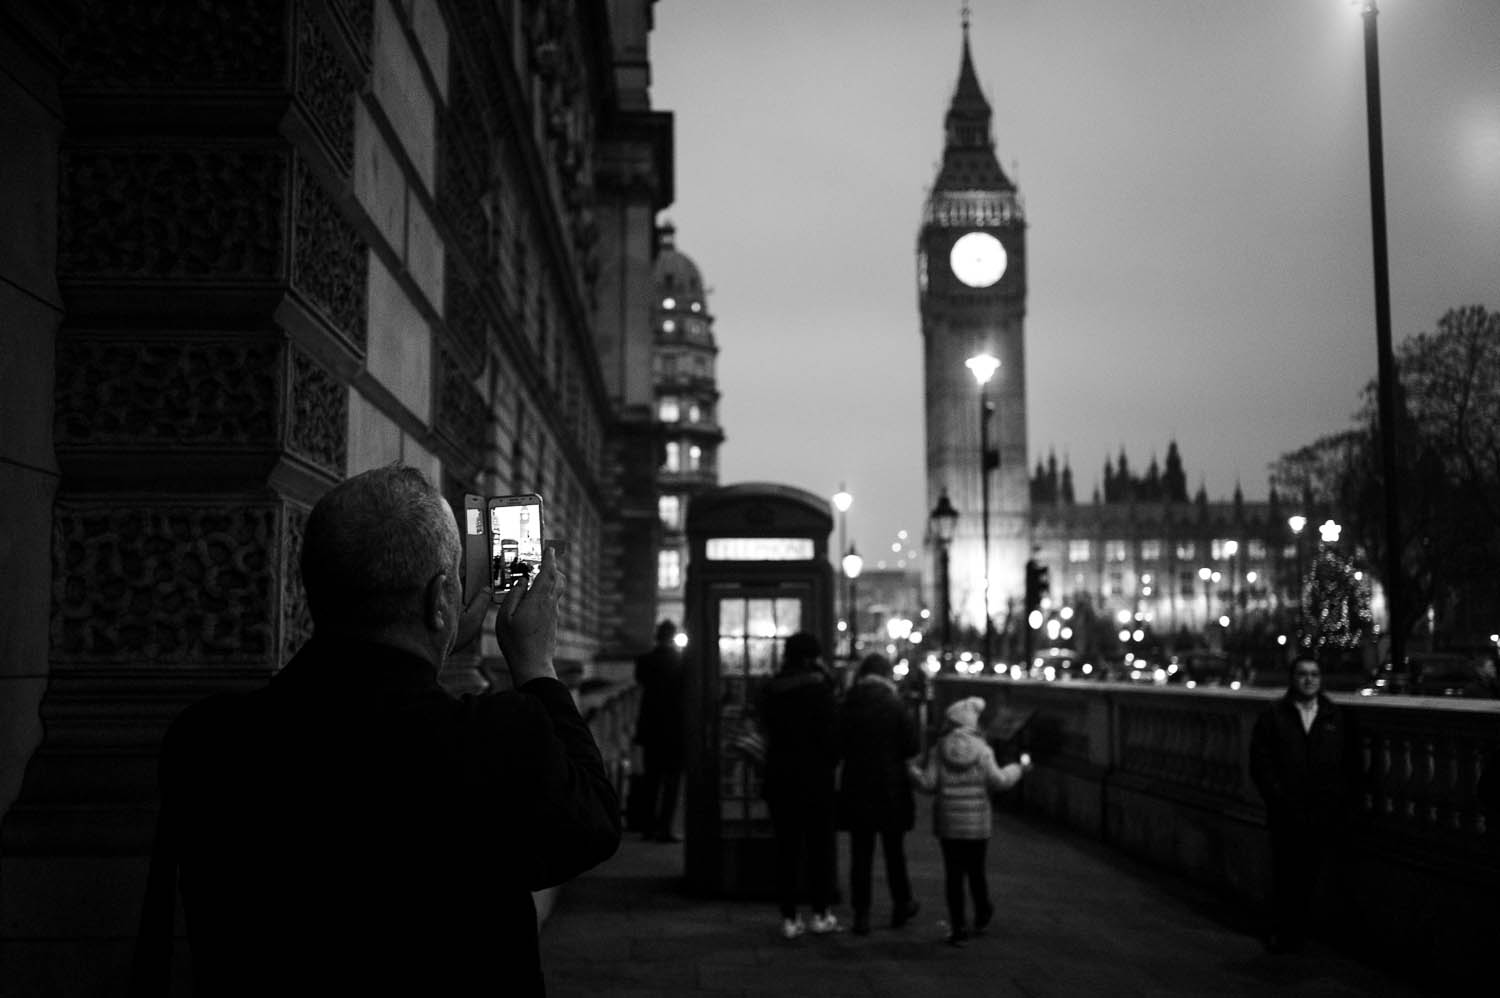 A man photographs Elizabeth Tower with his cell phone in London